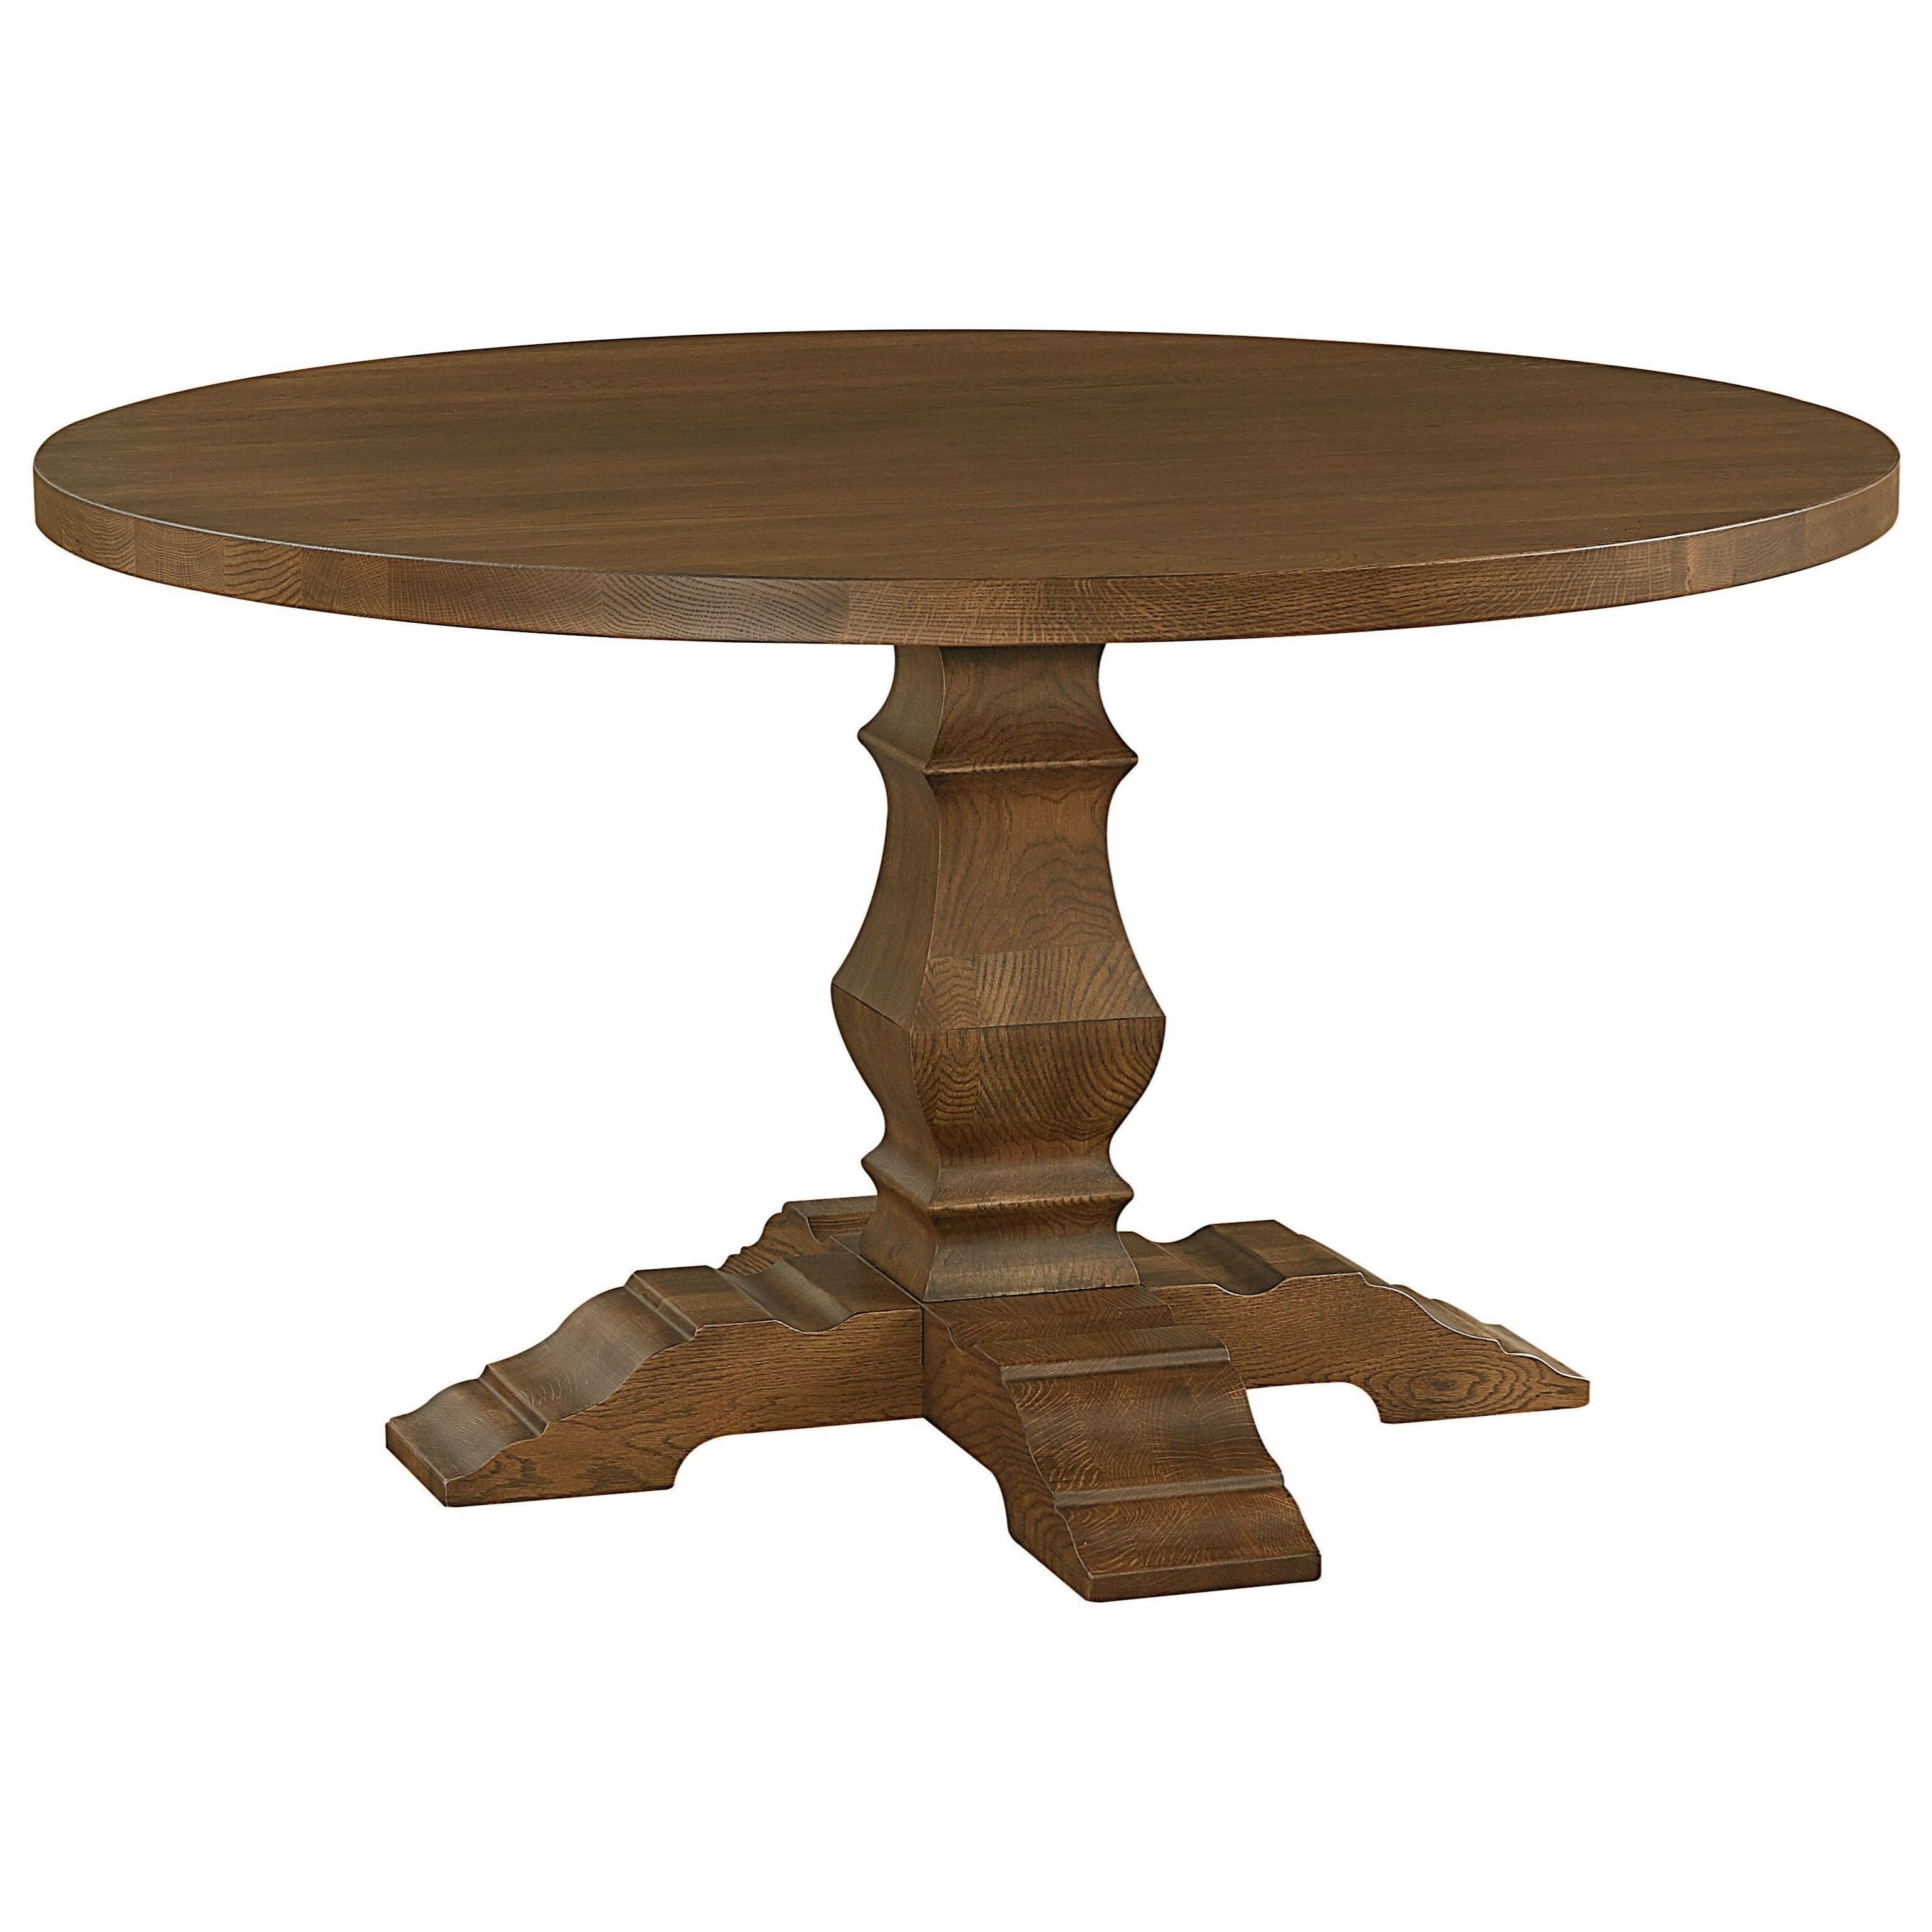 BenchMade Dining Table by Bassett at Bassett of Cool Springs